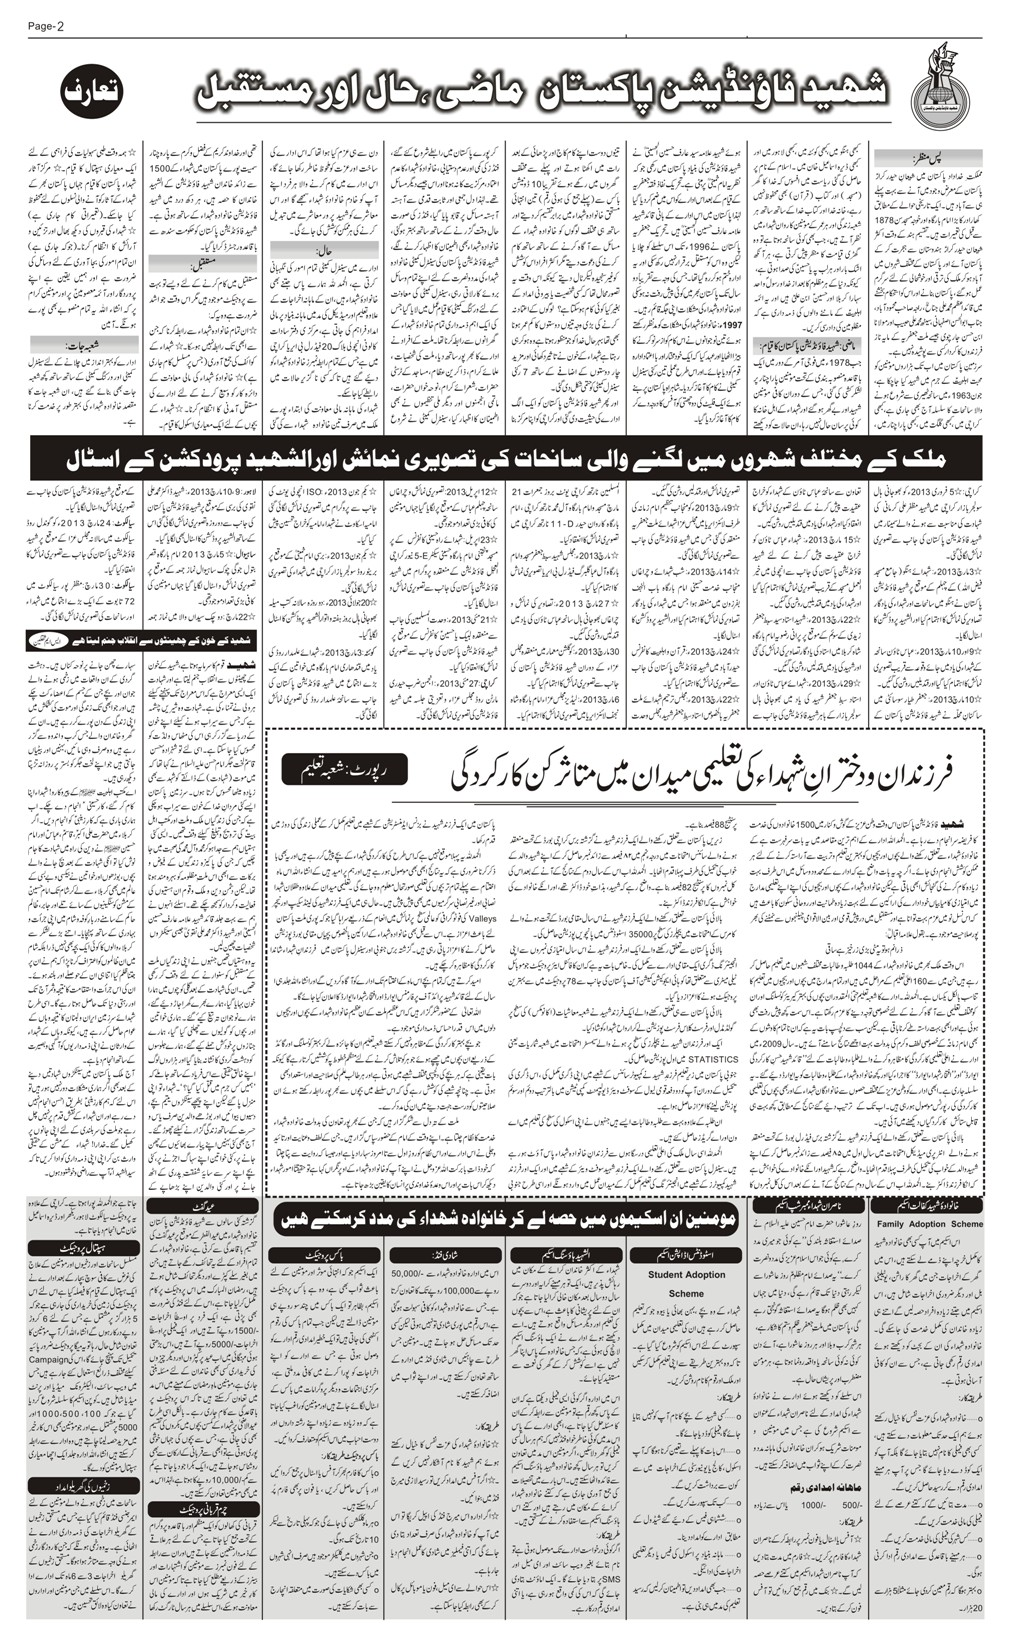 Al Shaheed News paper (July 2013) Issue